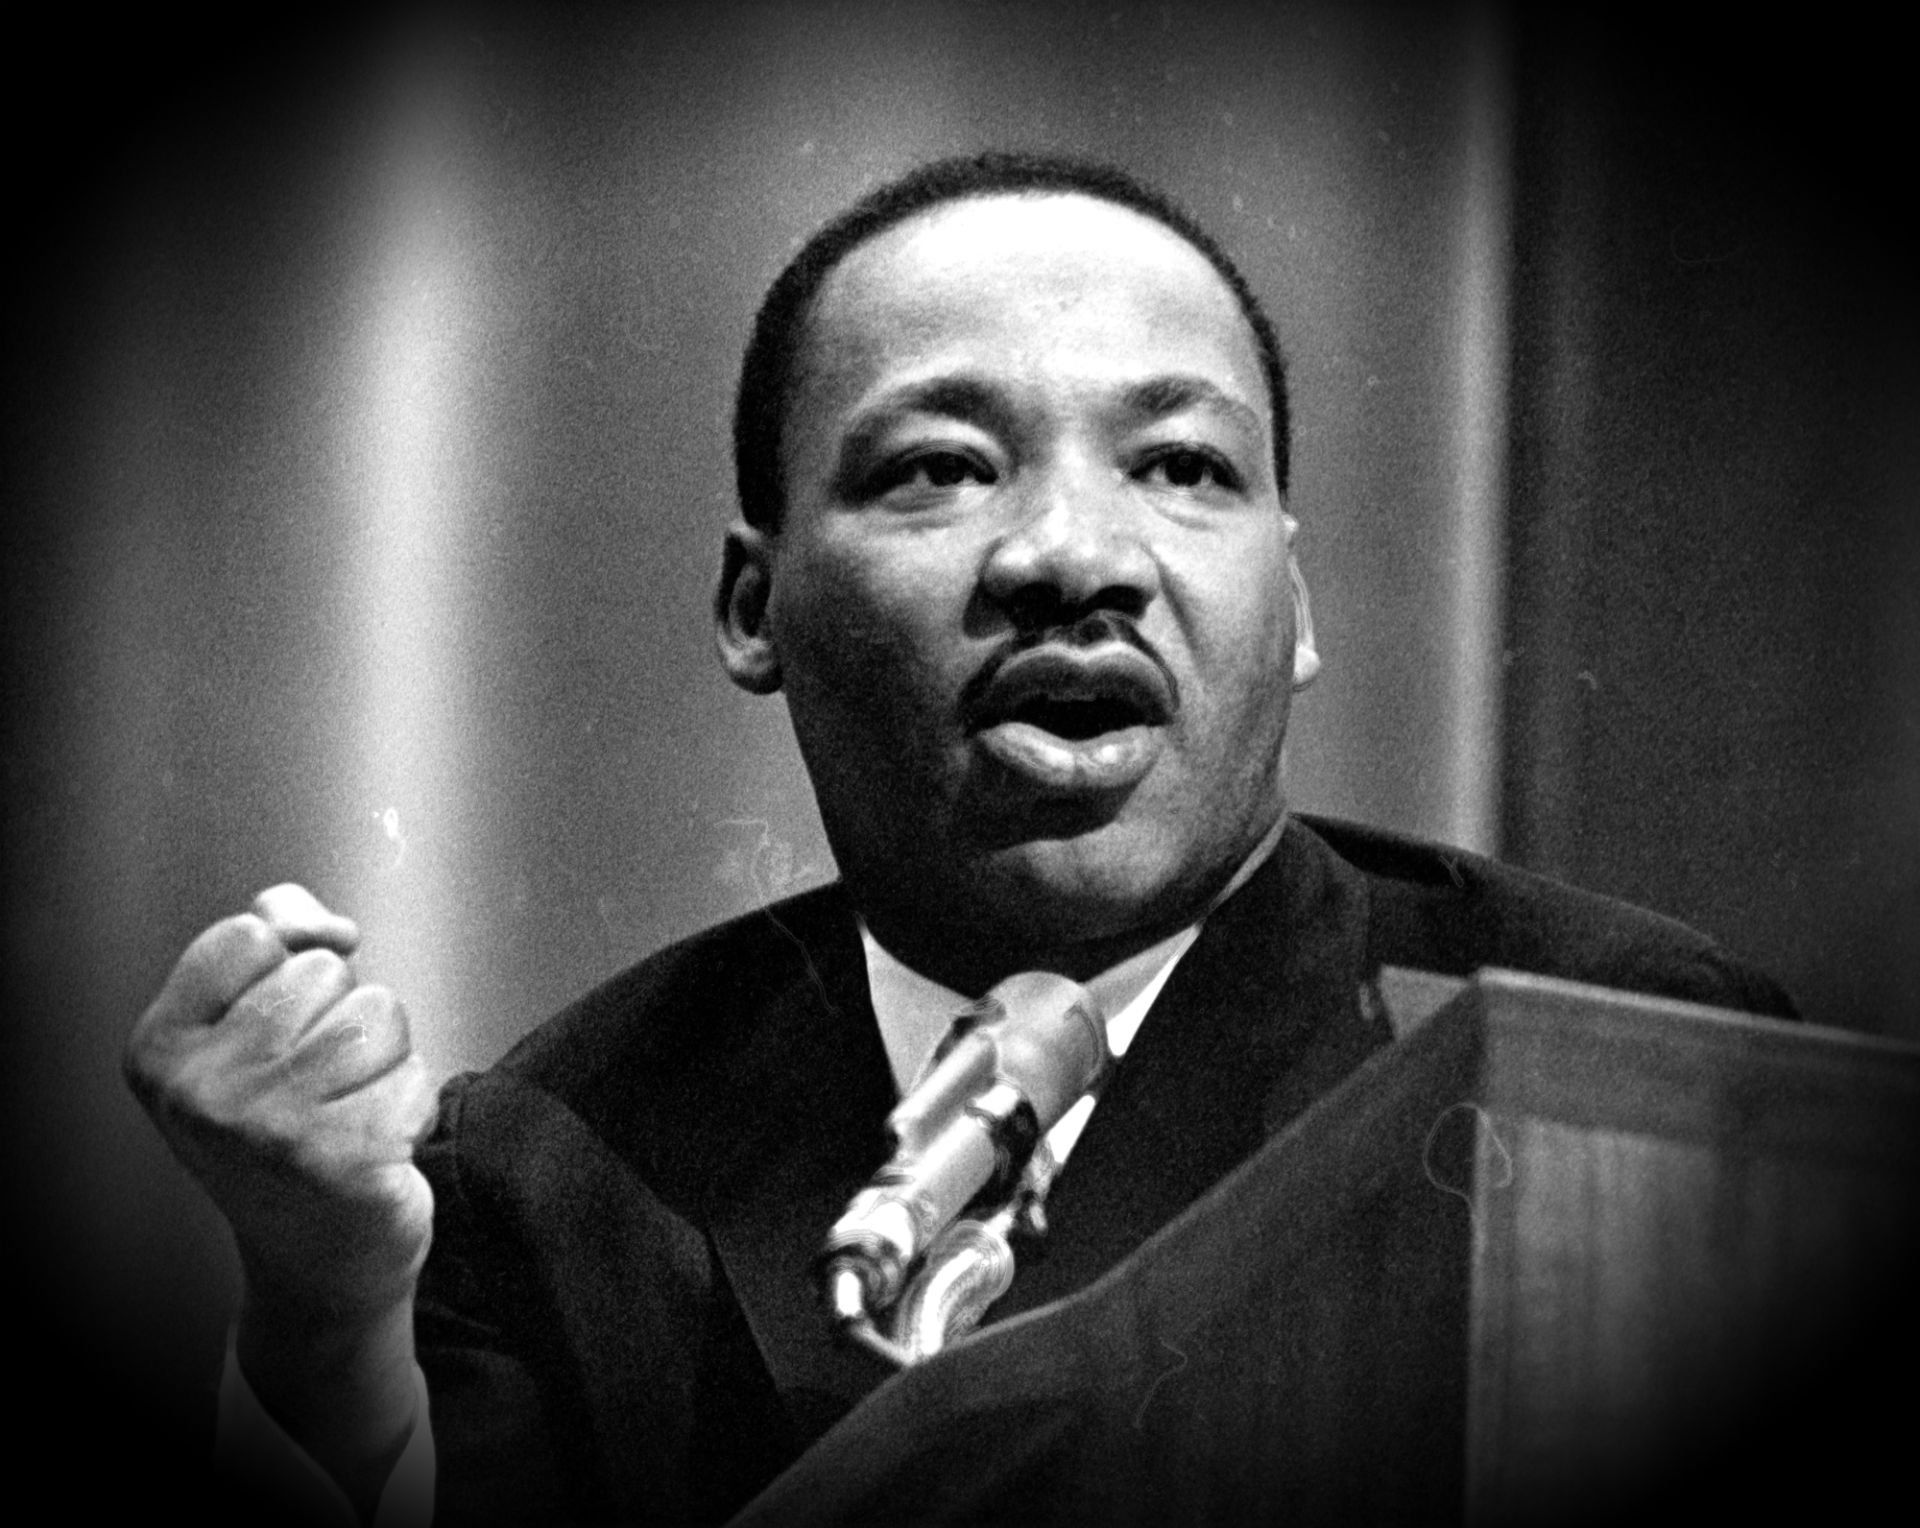 Martin Luther King jr HD Images Wallpapers Pictures with Messages ...